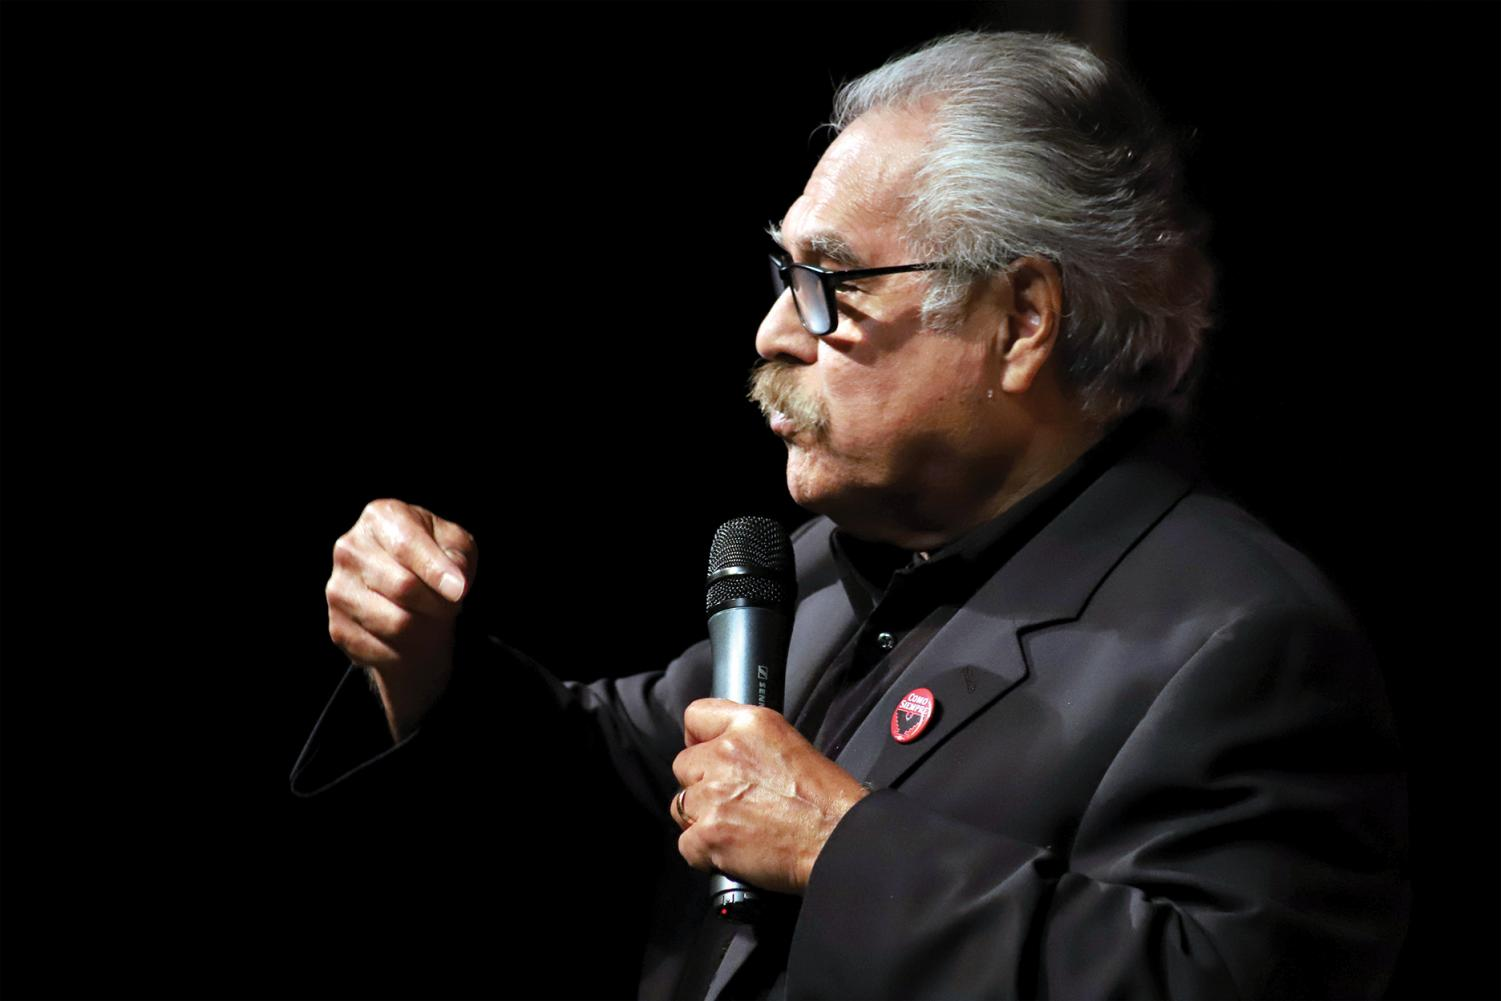 Luis Valdez speaks to a packed crowd in the SJCC Campus Theater on Oct. 21.